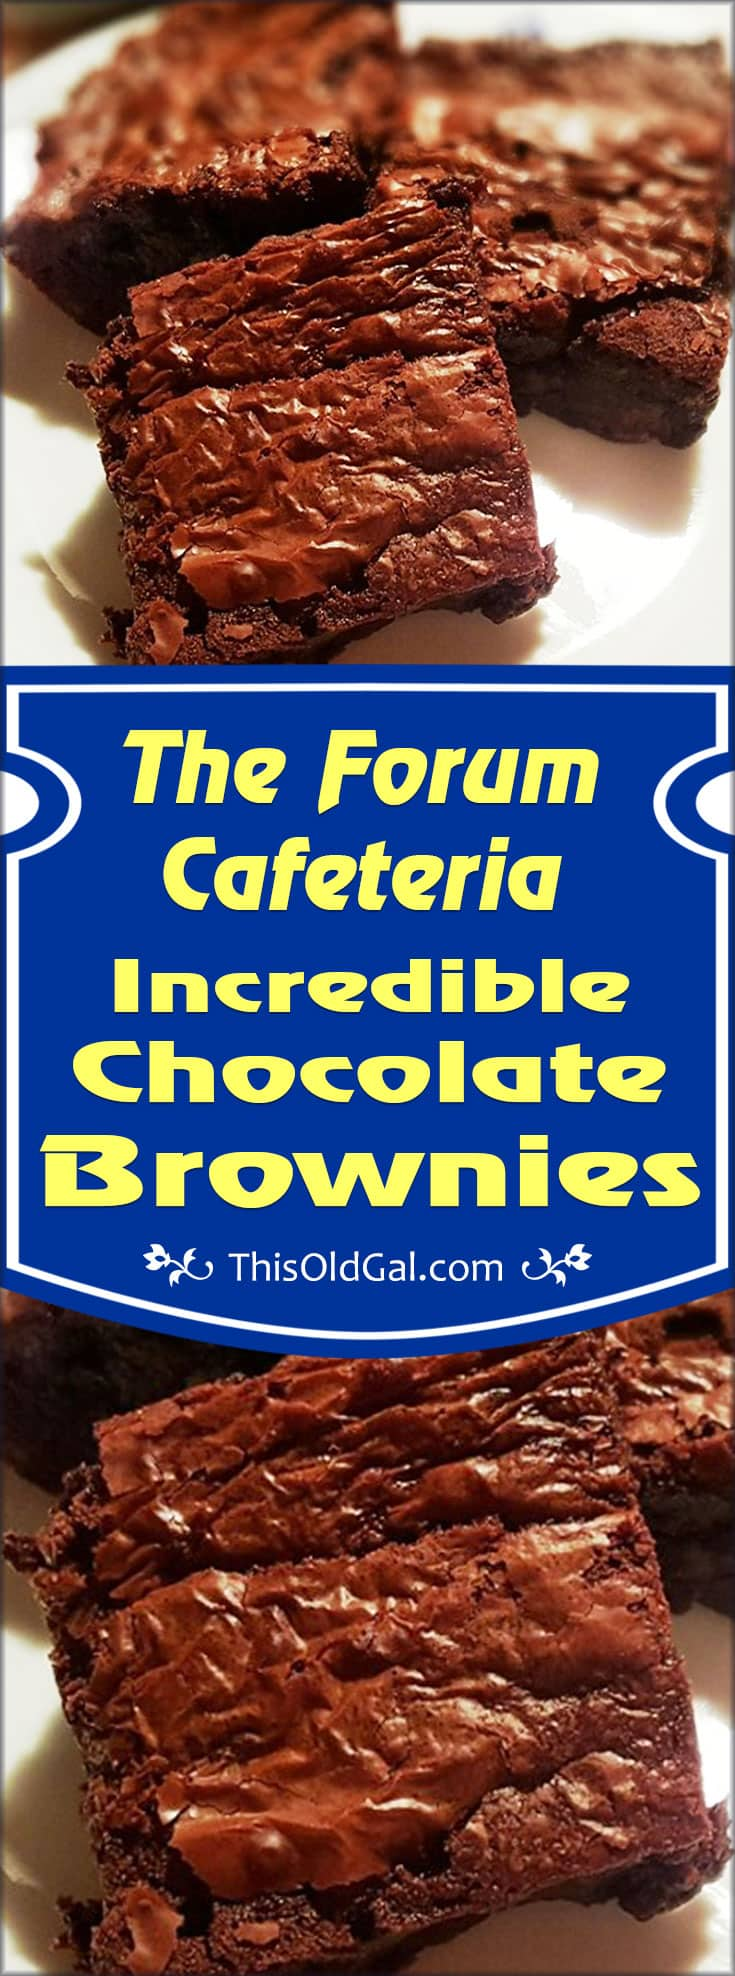 The Forum Cafeteria Incredible Chocolate Brownies